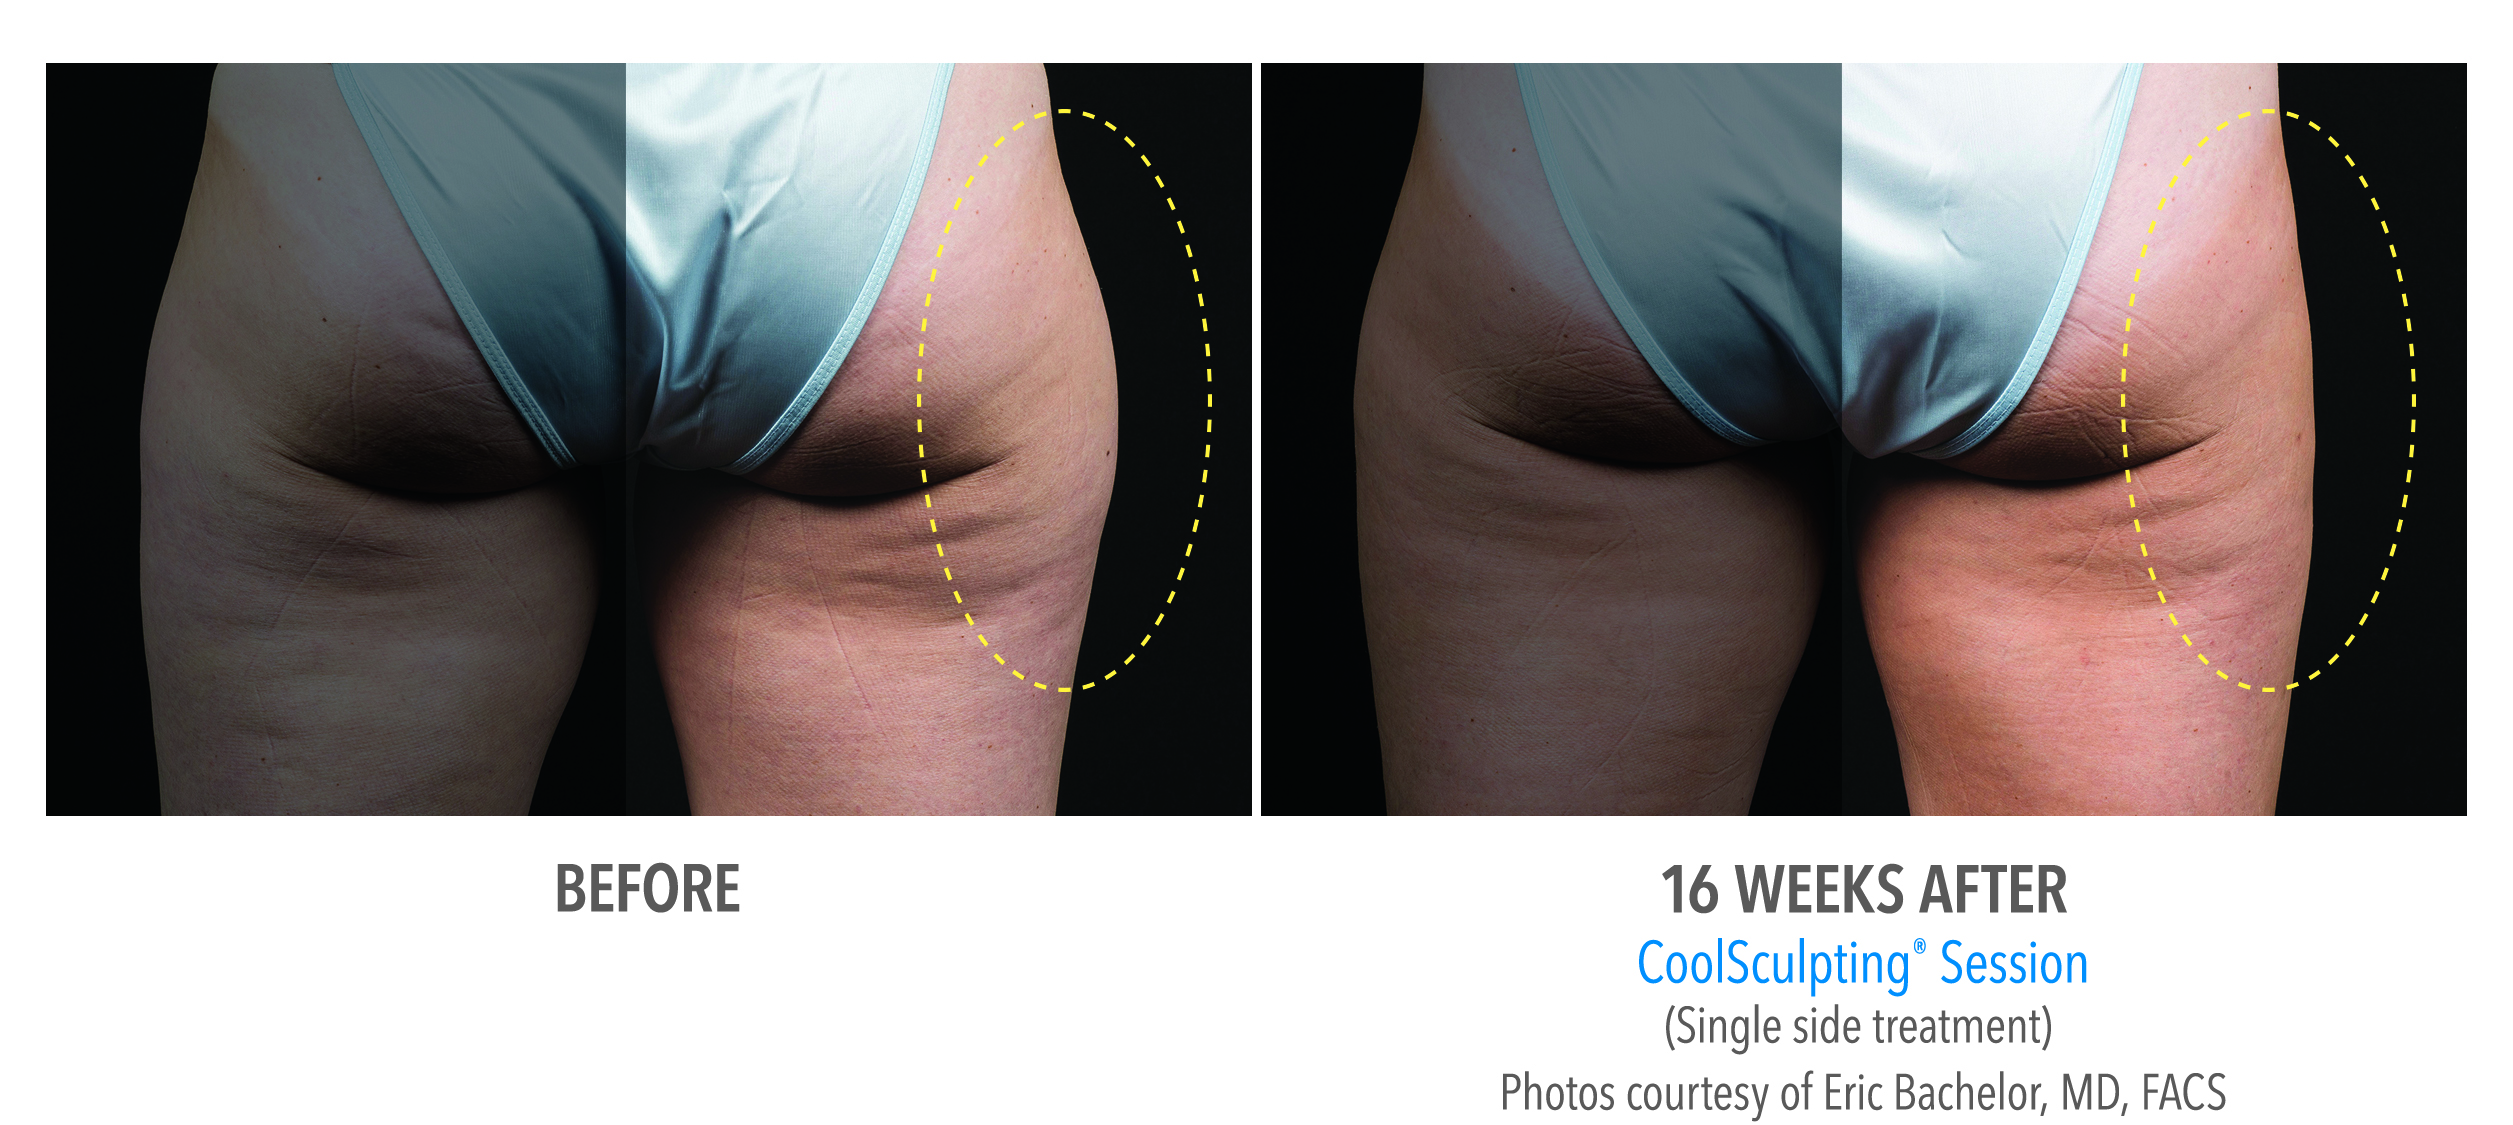 CoolSculpting outer thigh fat reduction before and after image